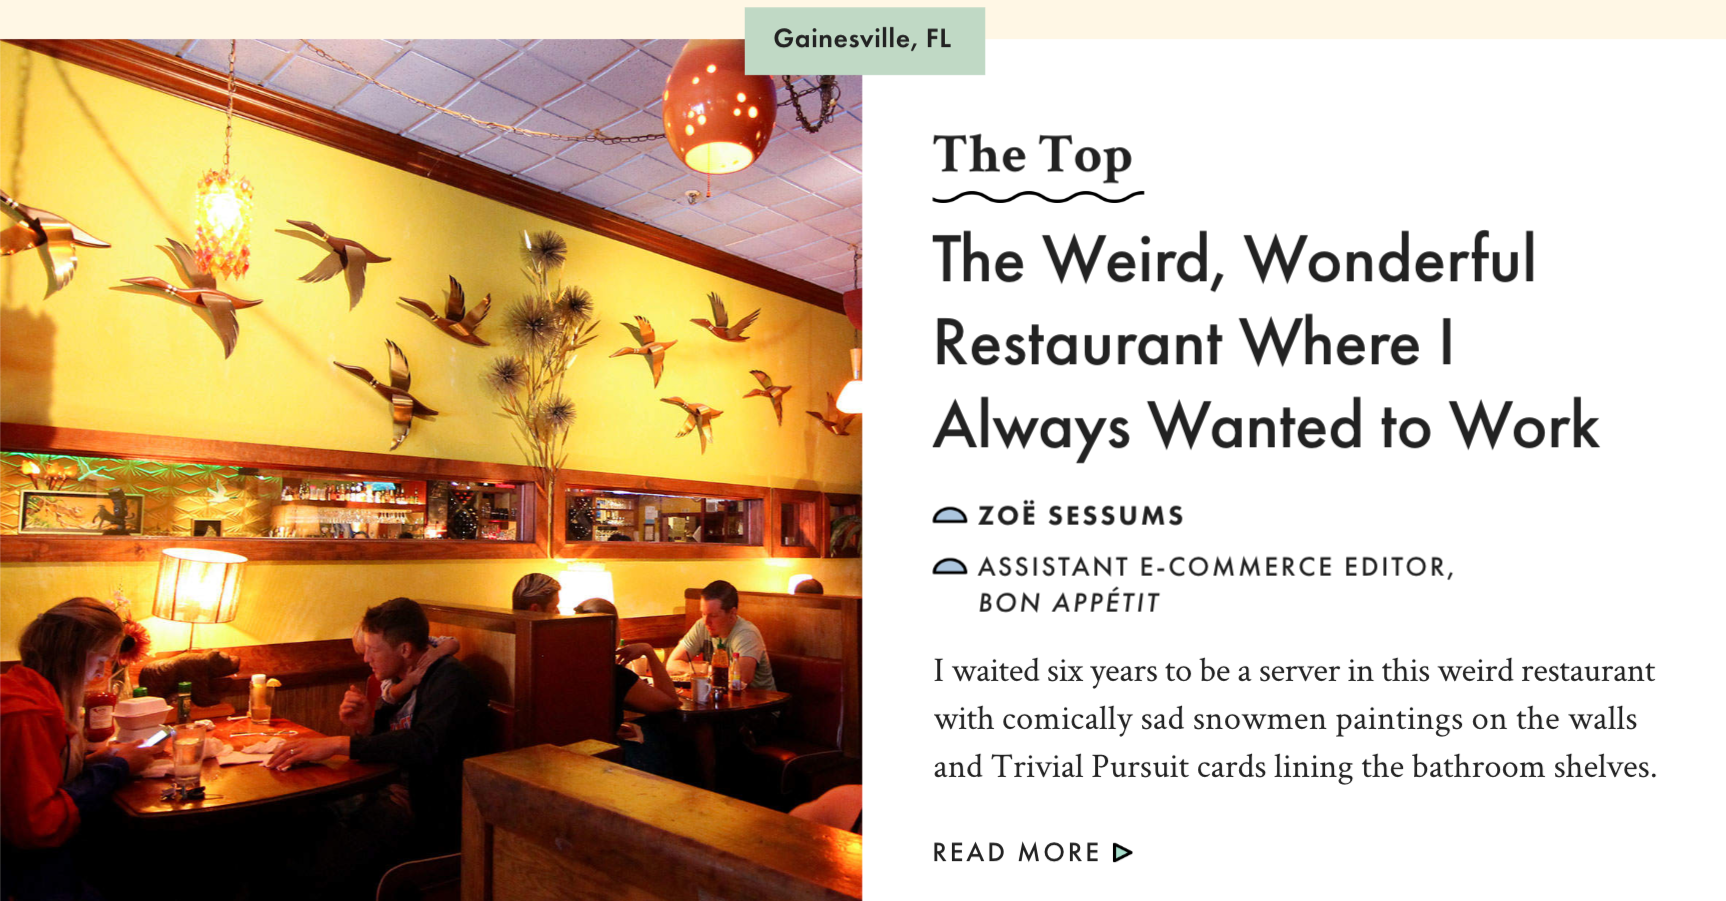 The Weird, Wonderful Restaurant Where I Always Wanted to Work